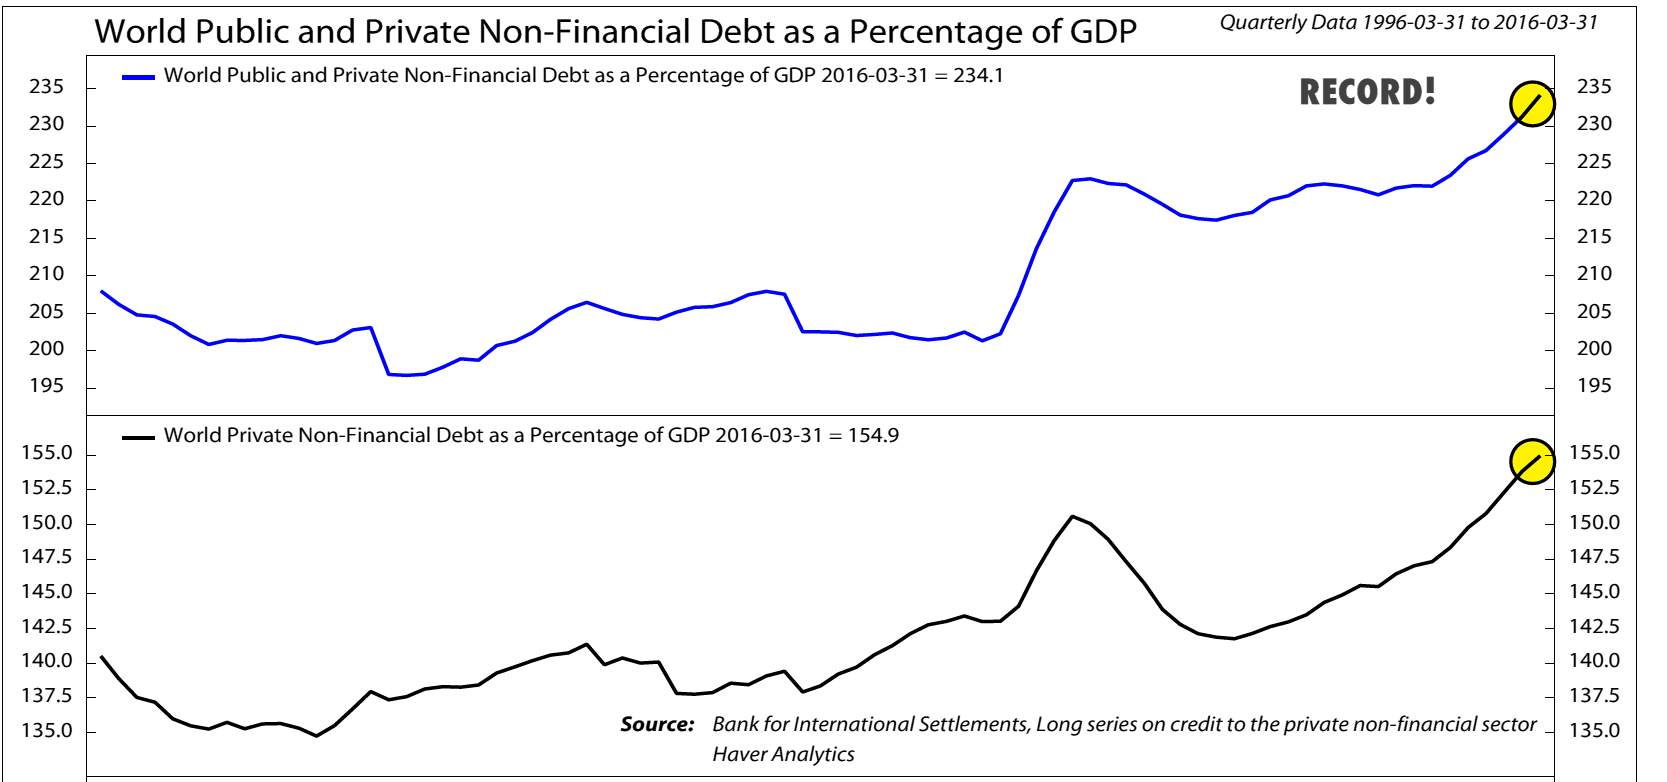 World Public and Private Non-Financial Debt